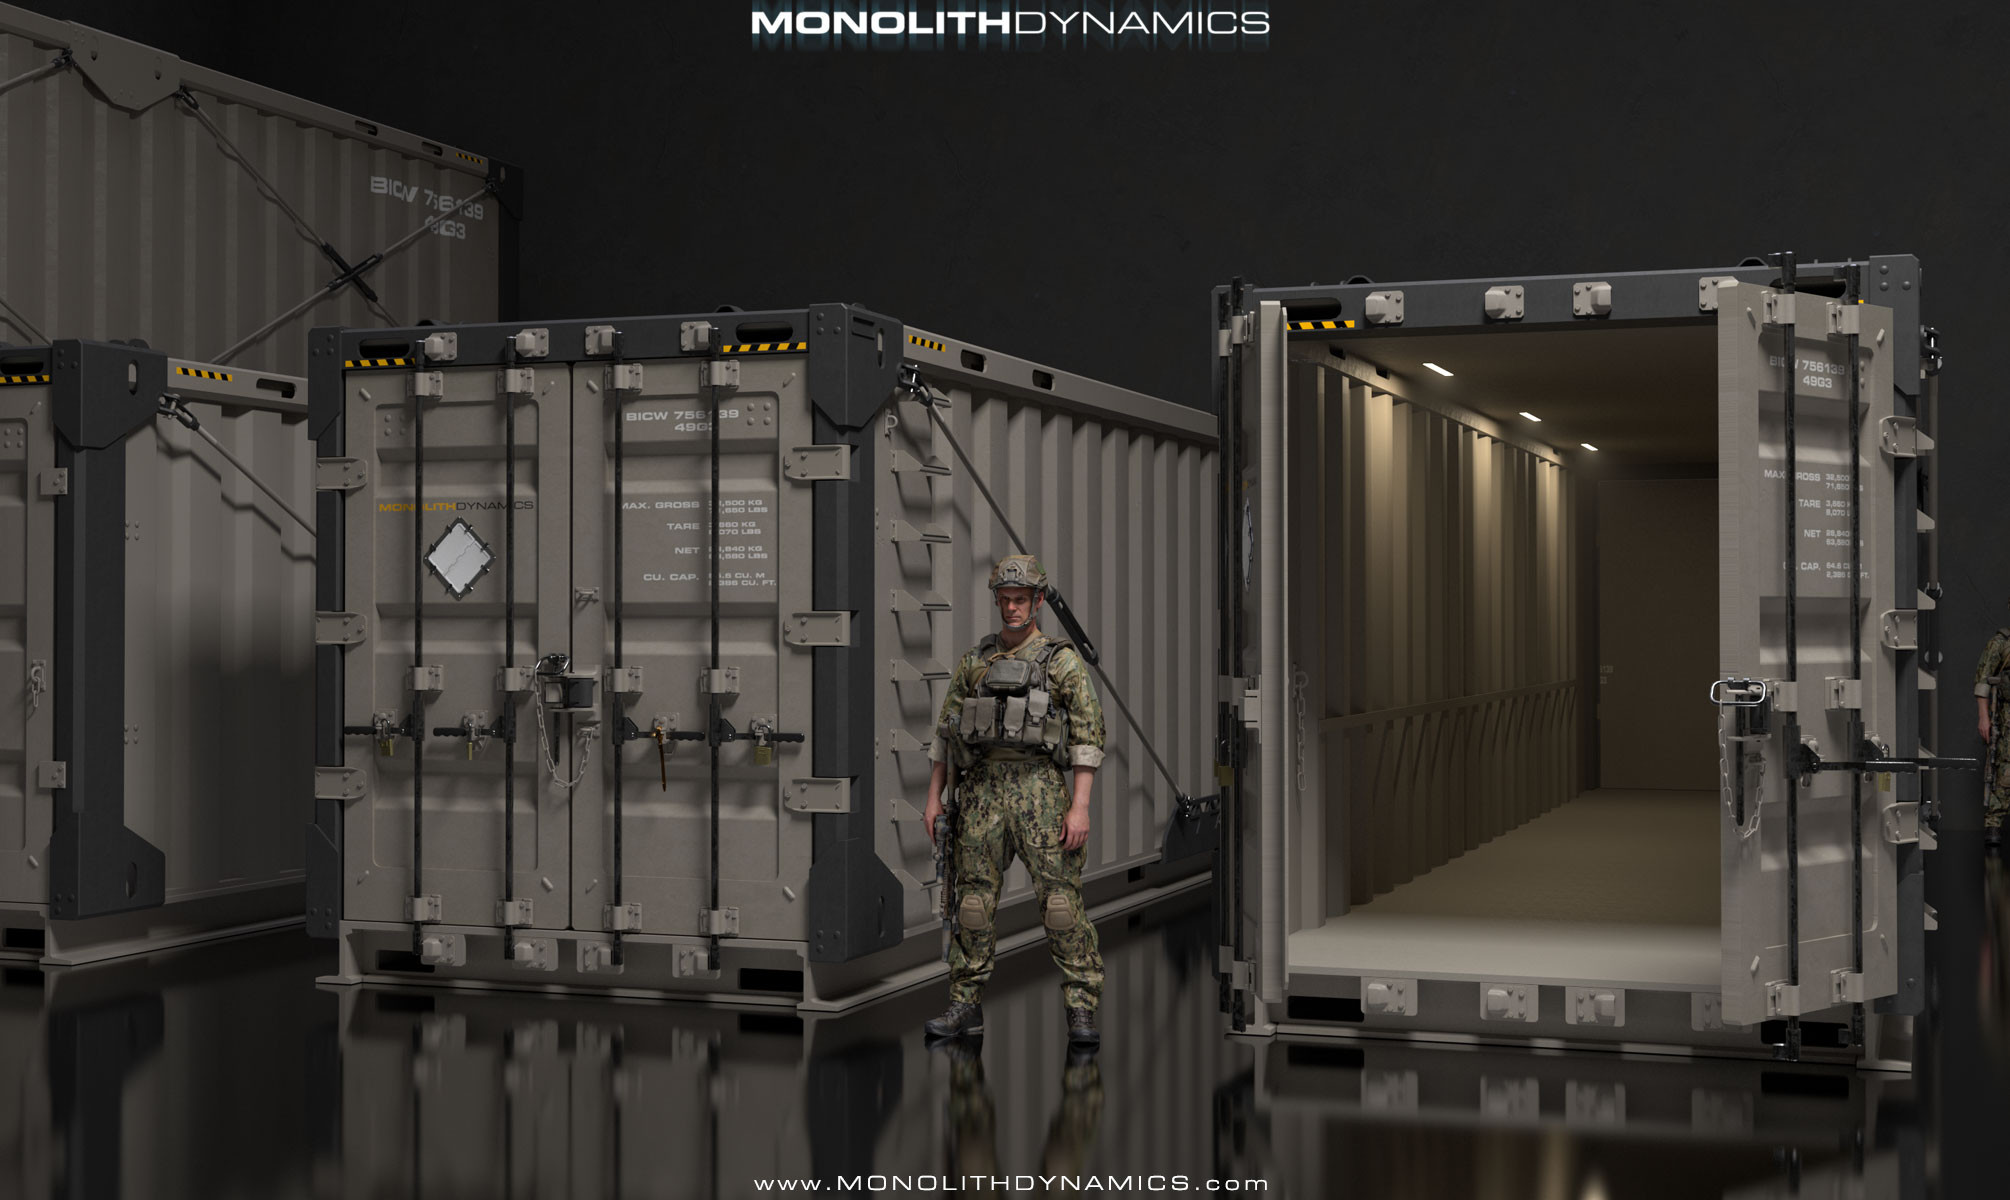 https://monolithdynamics.com/modular-shipping-containers/